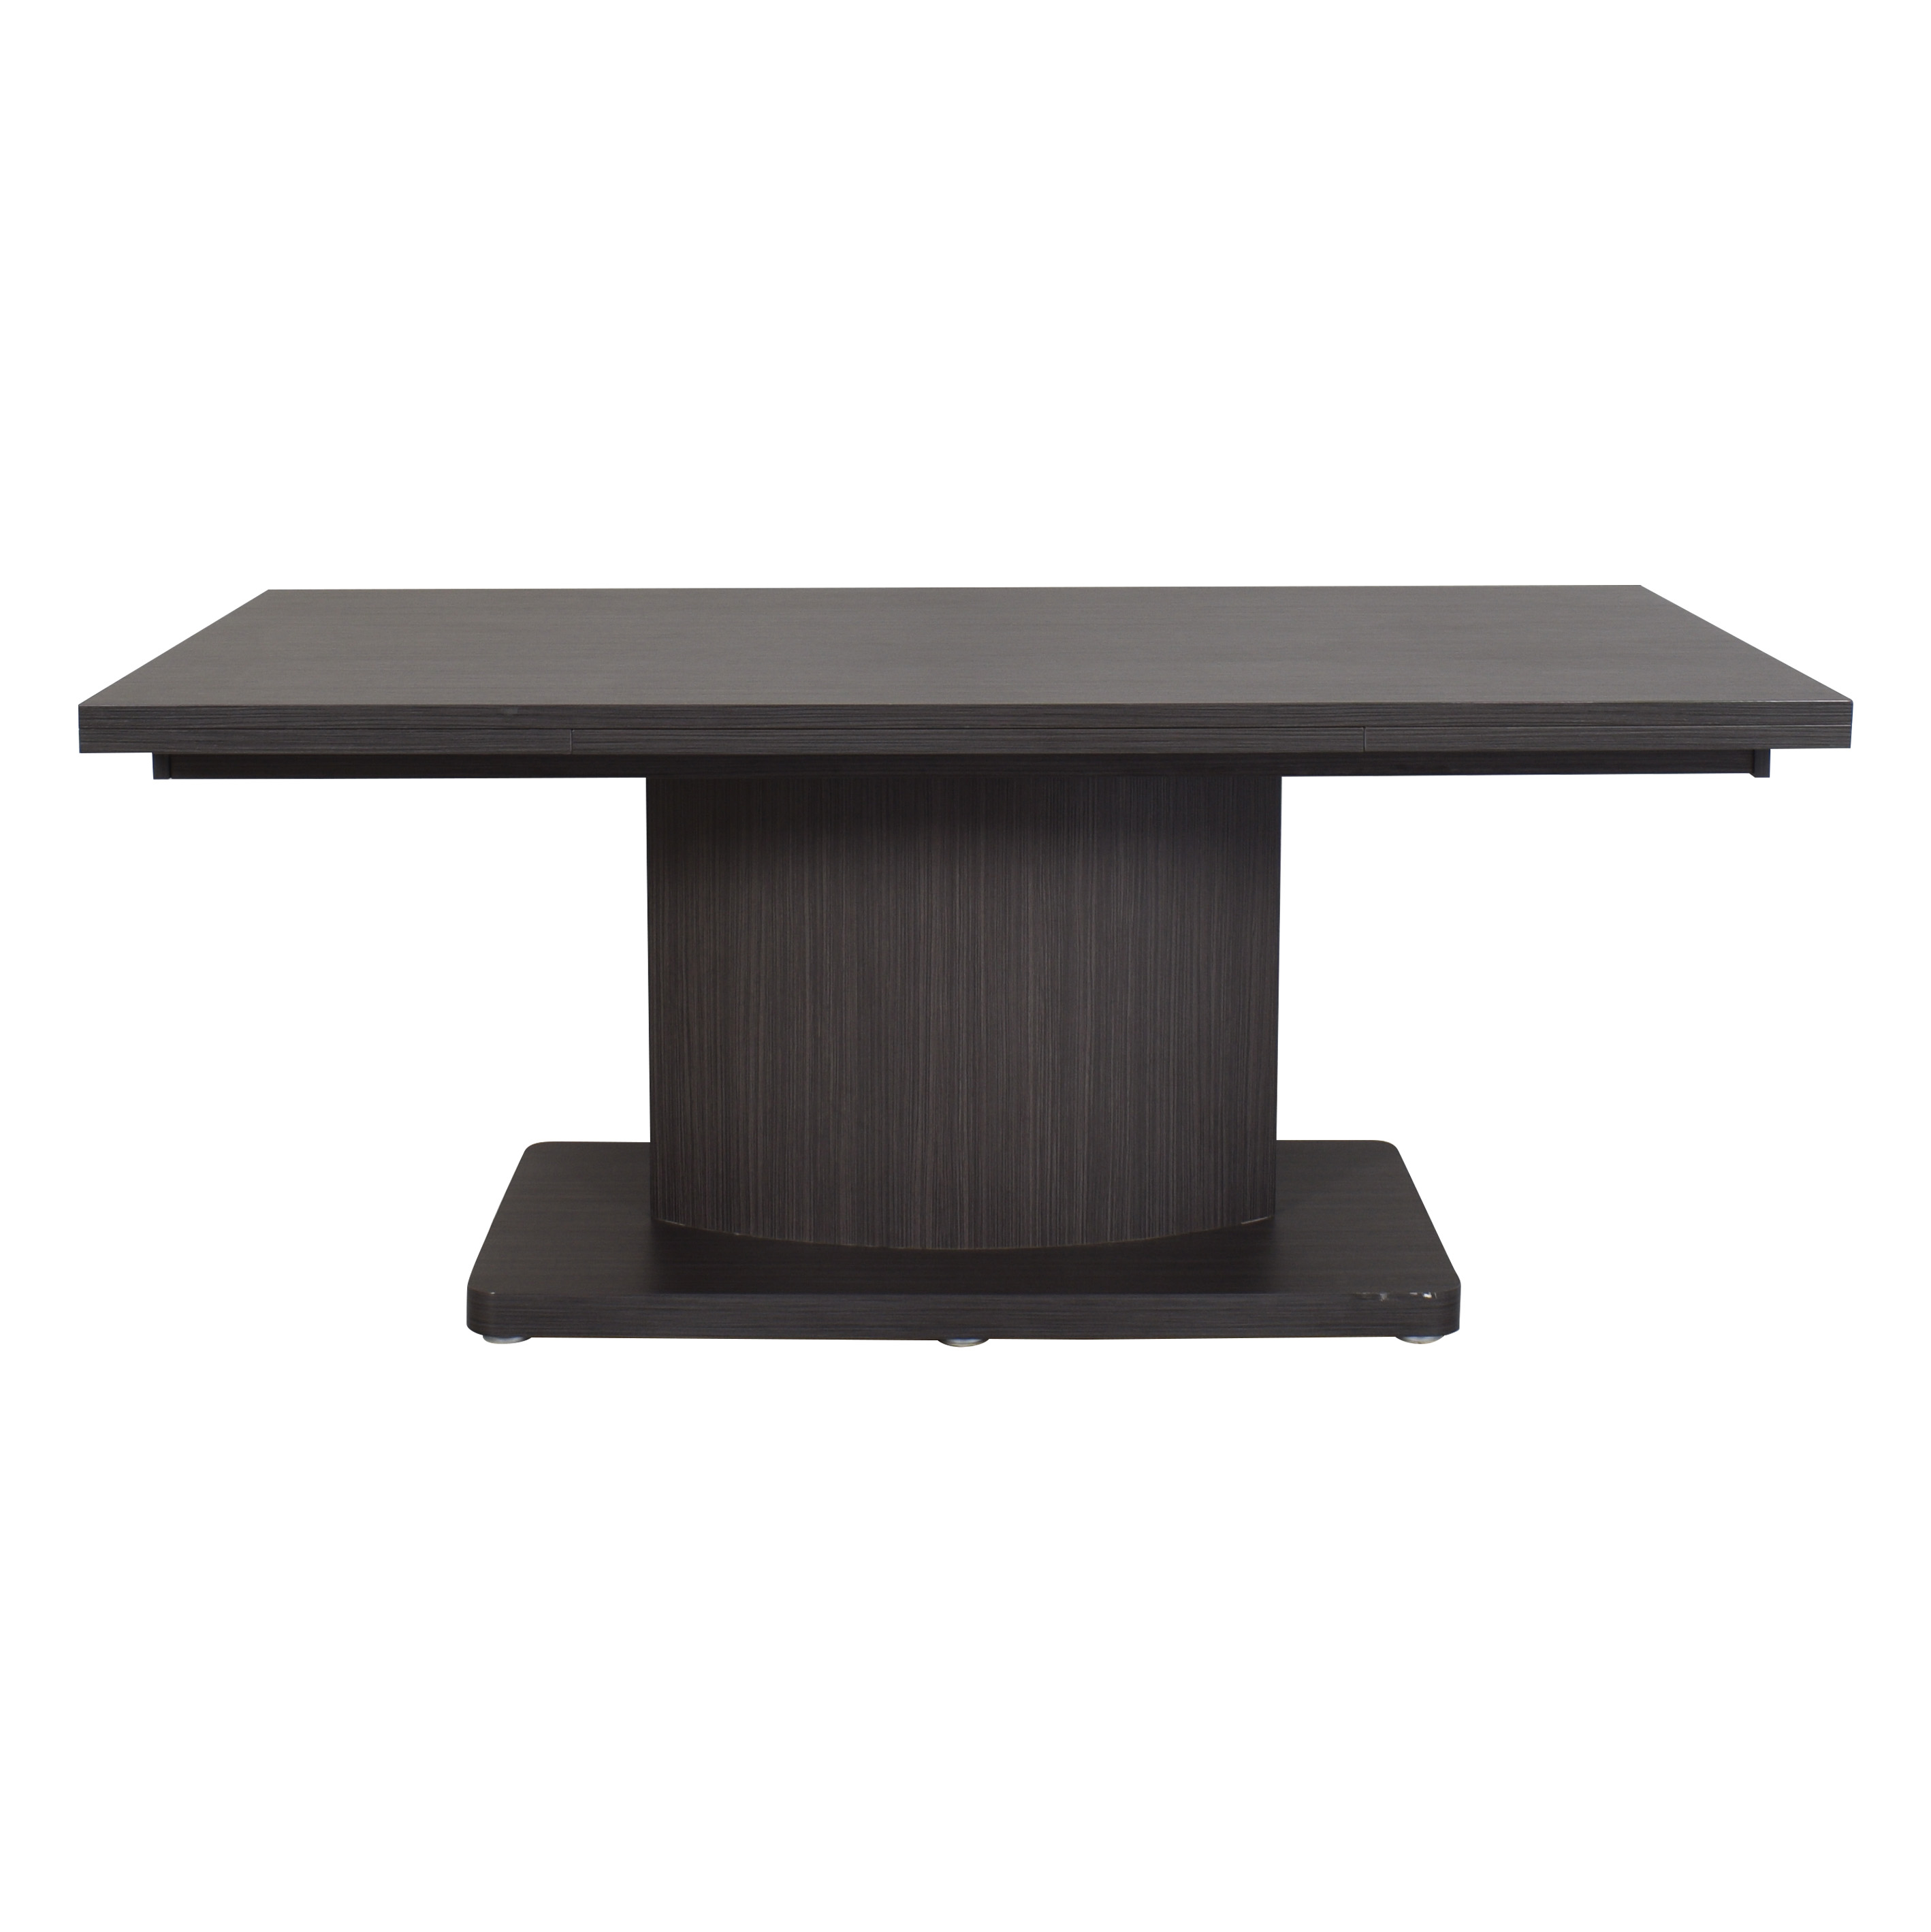 Lazzoni Lazzoni Raena Extendable Dining Table Tables